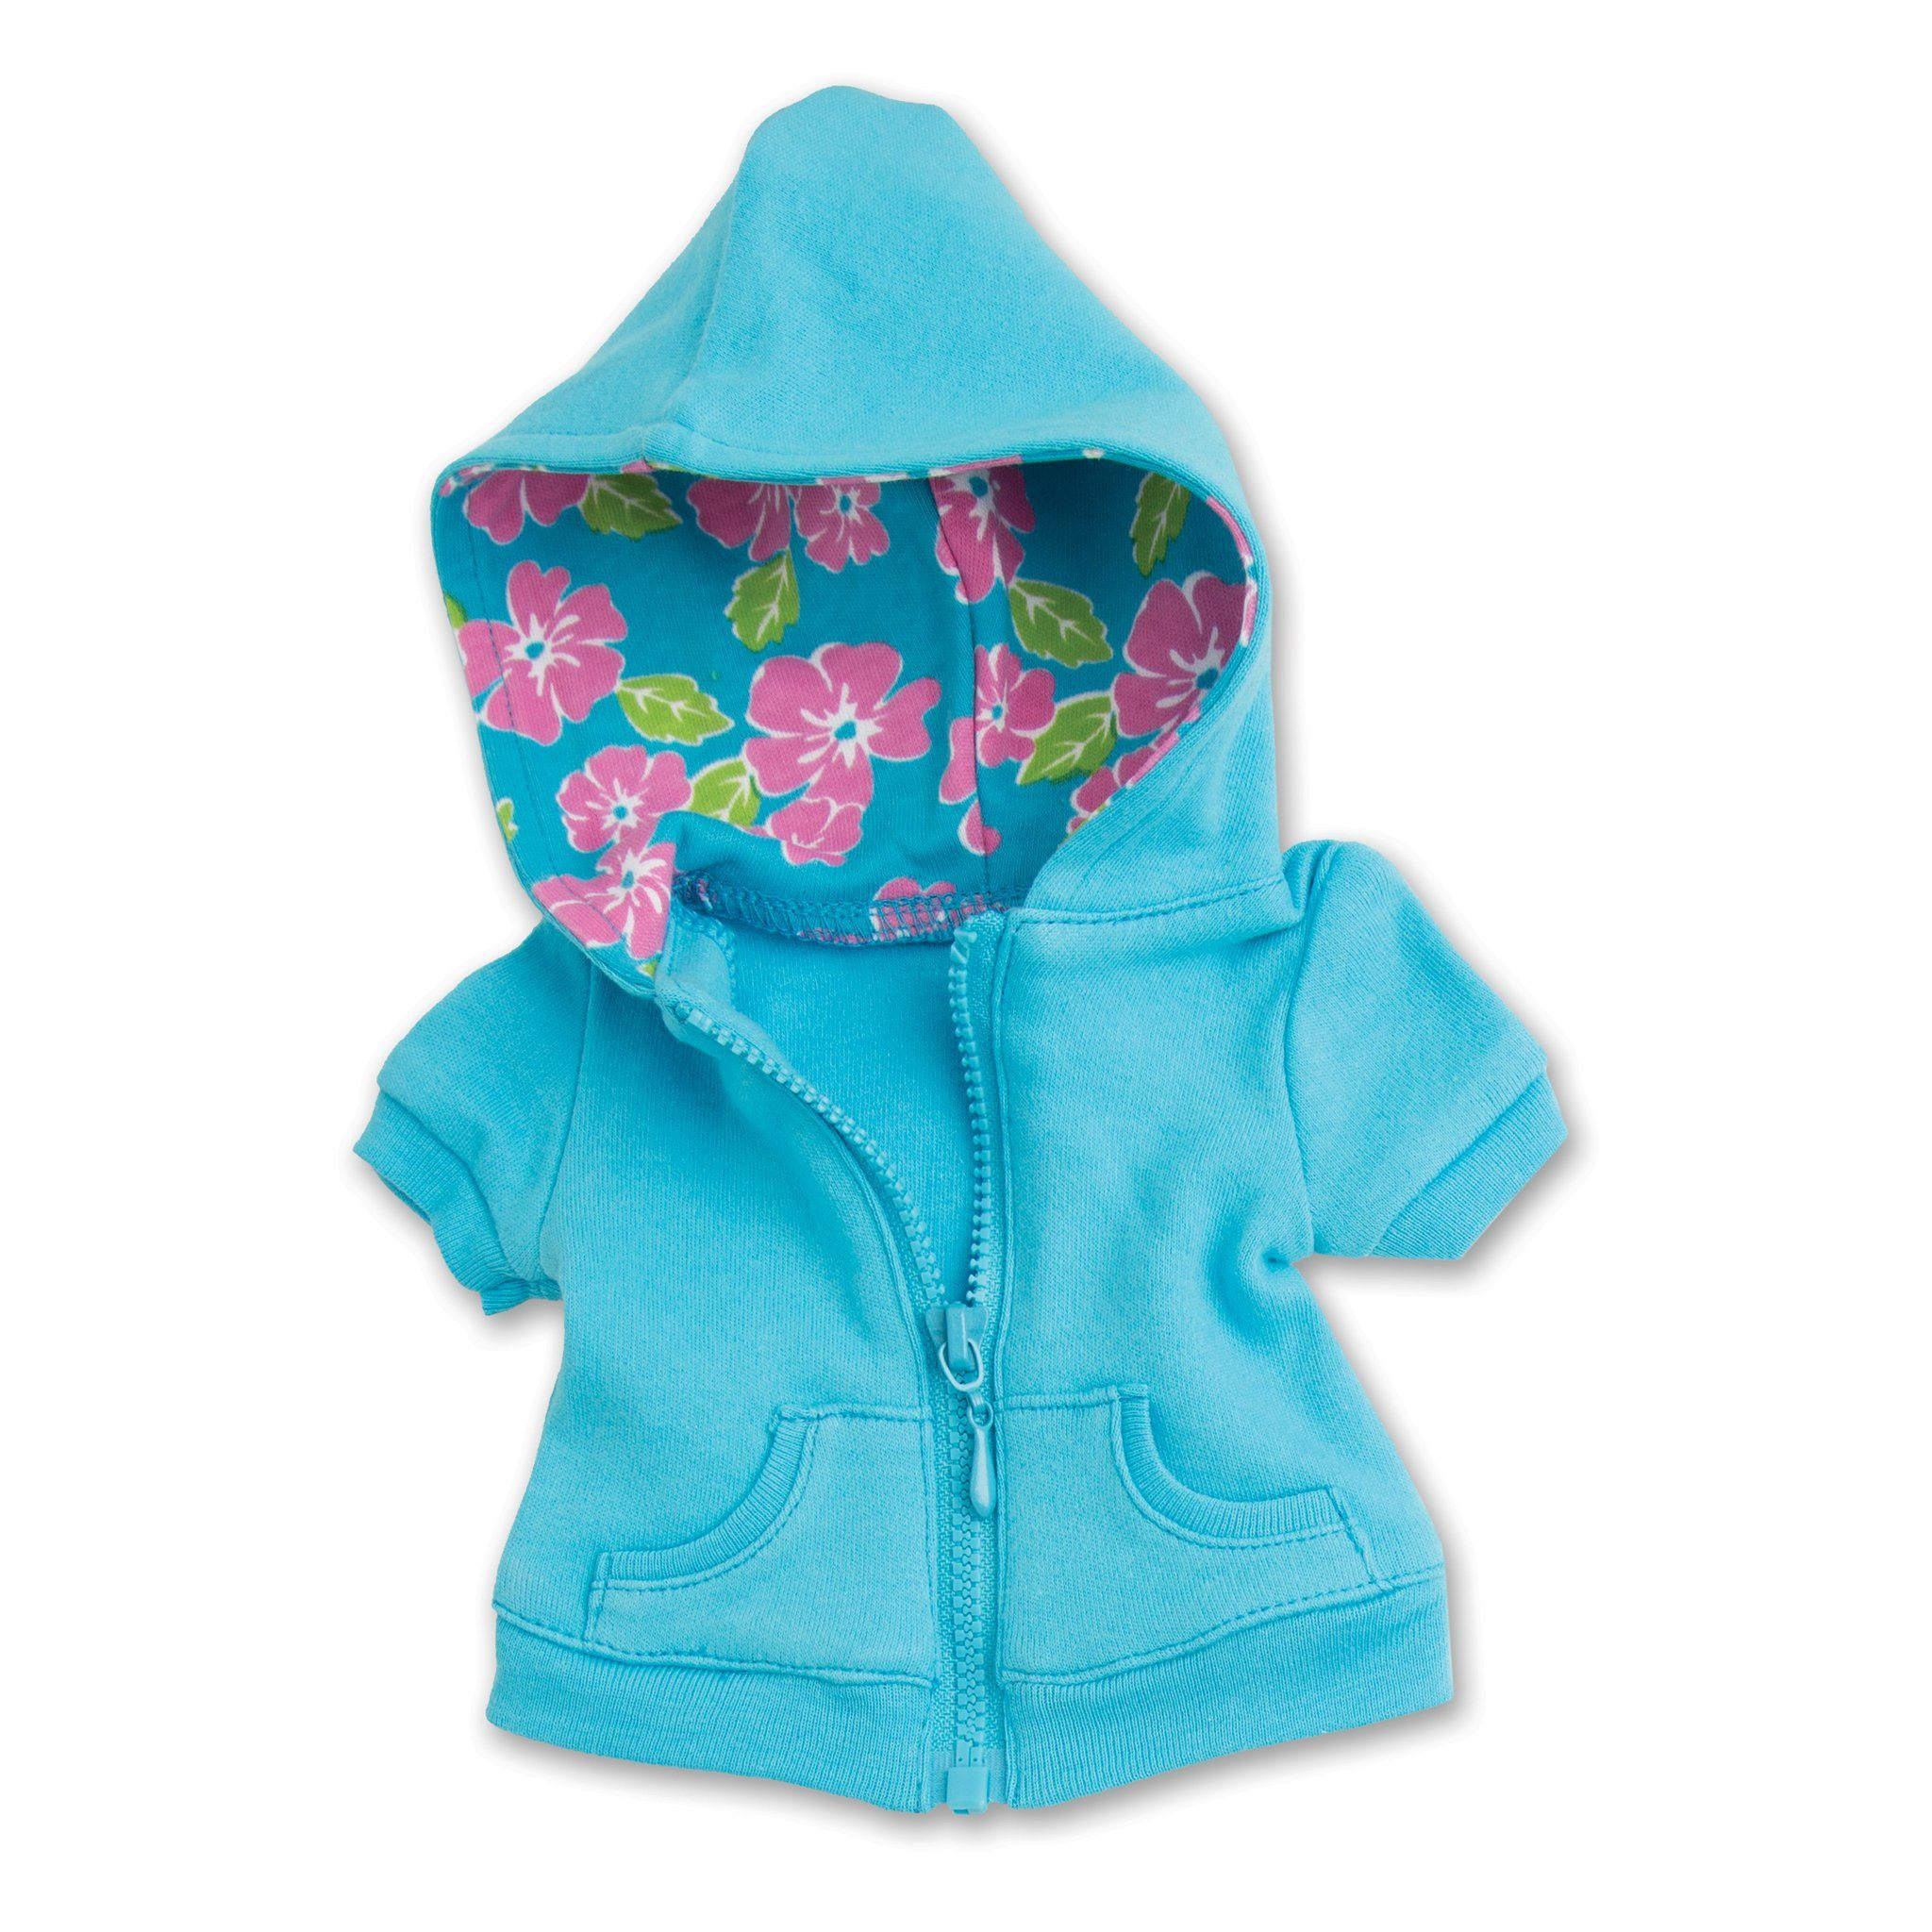 Awesome Blossom 4 piece outfit blue short sleeved floral-llned hoody fits all 18 inch dolls.